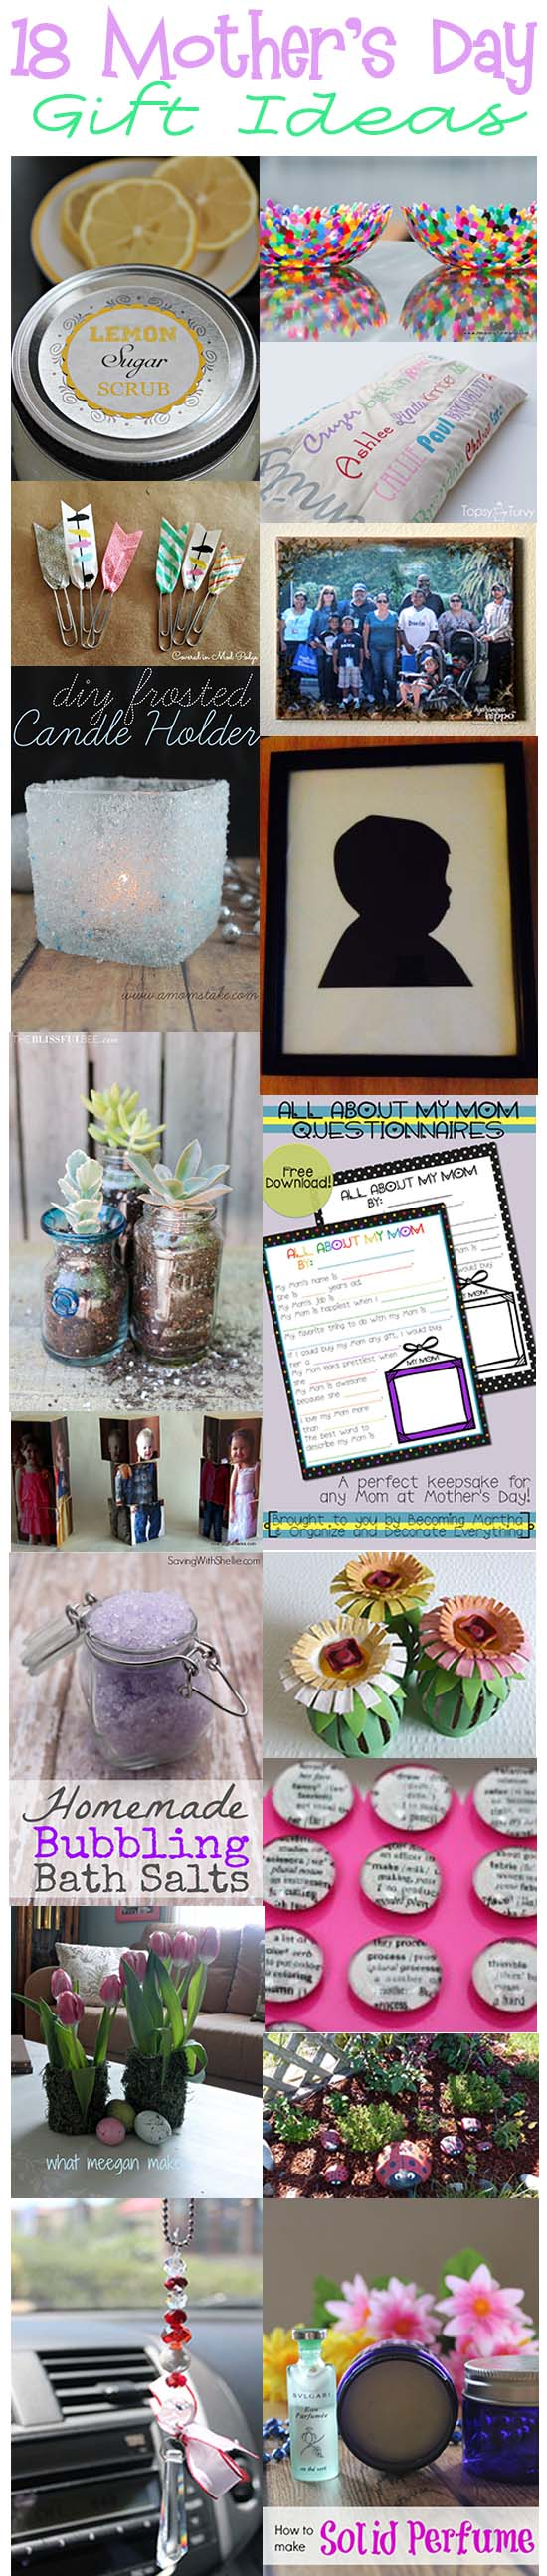 Mothers-Day-Gift-Ideas-2014-Collage